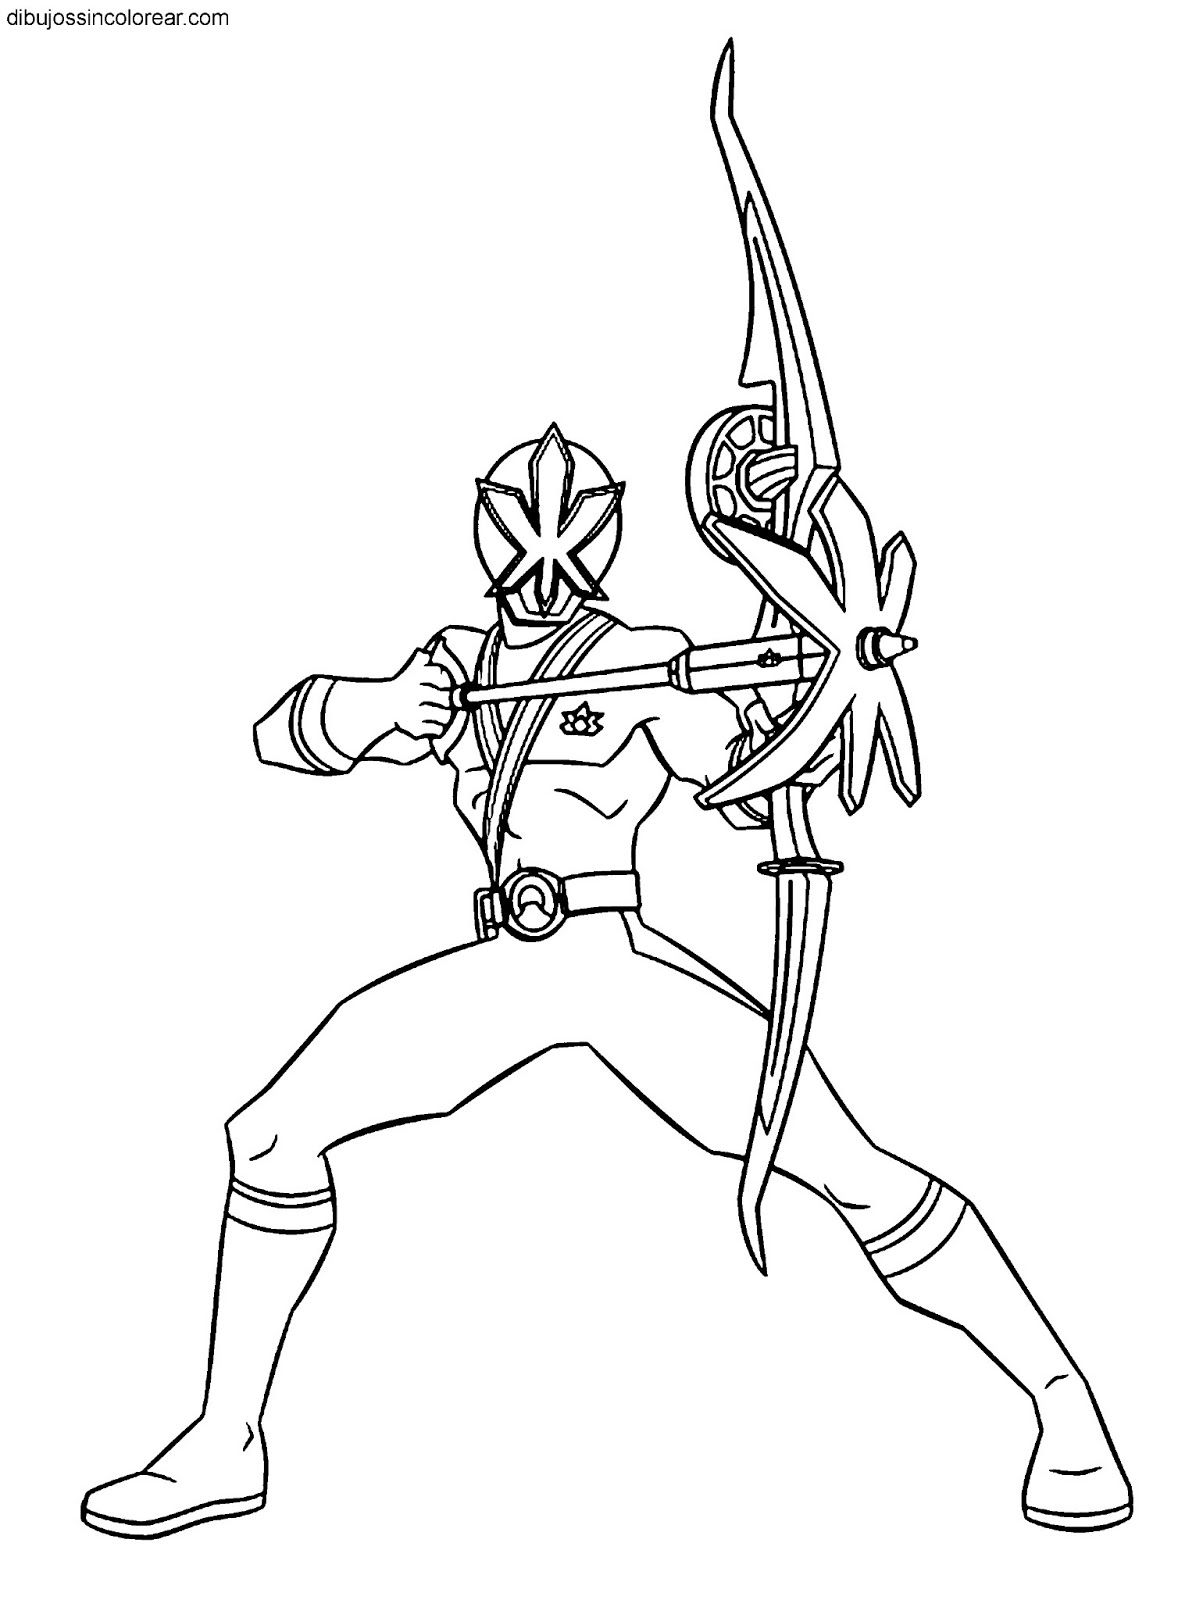 Dibujos de los Powers Rangers para colorear - Yahoo Search Results ...